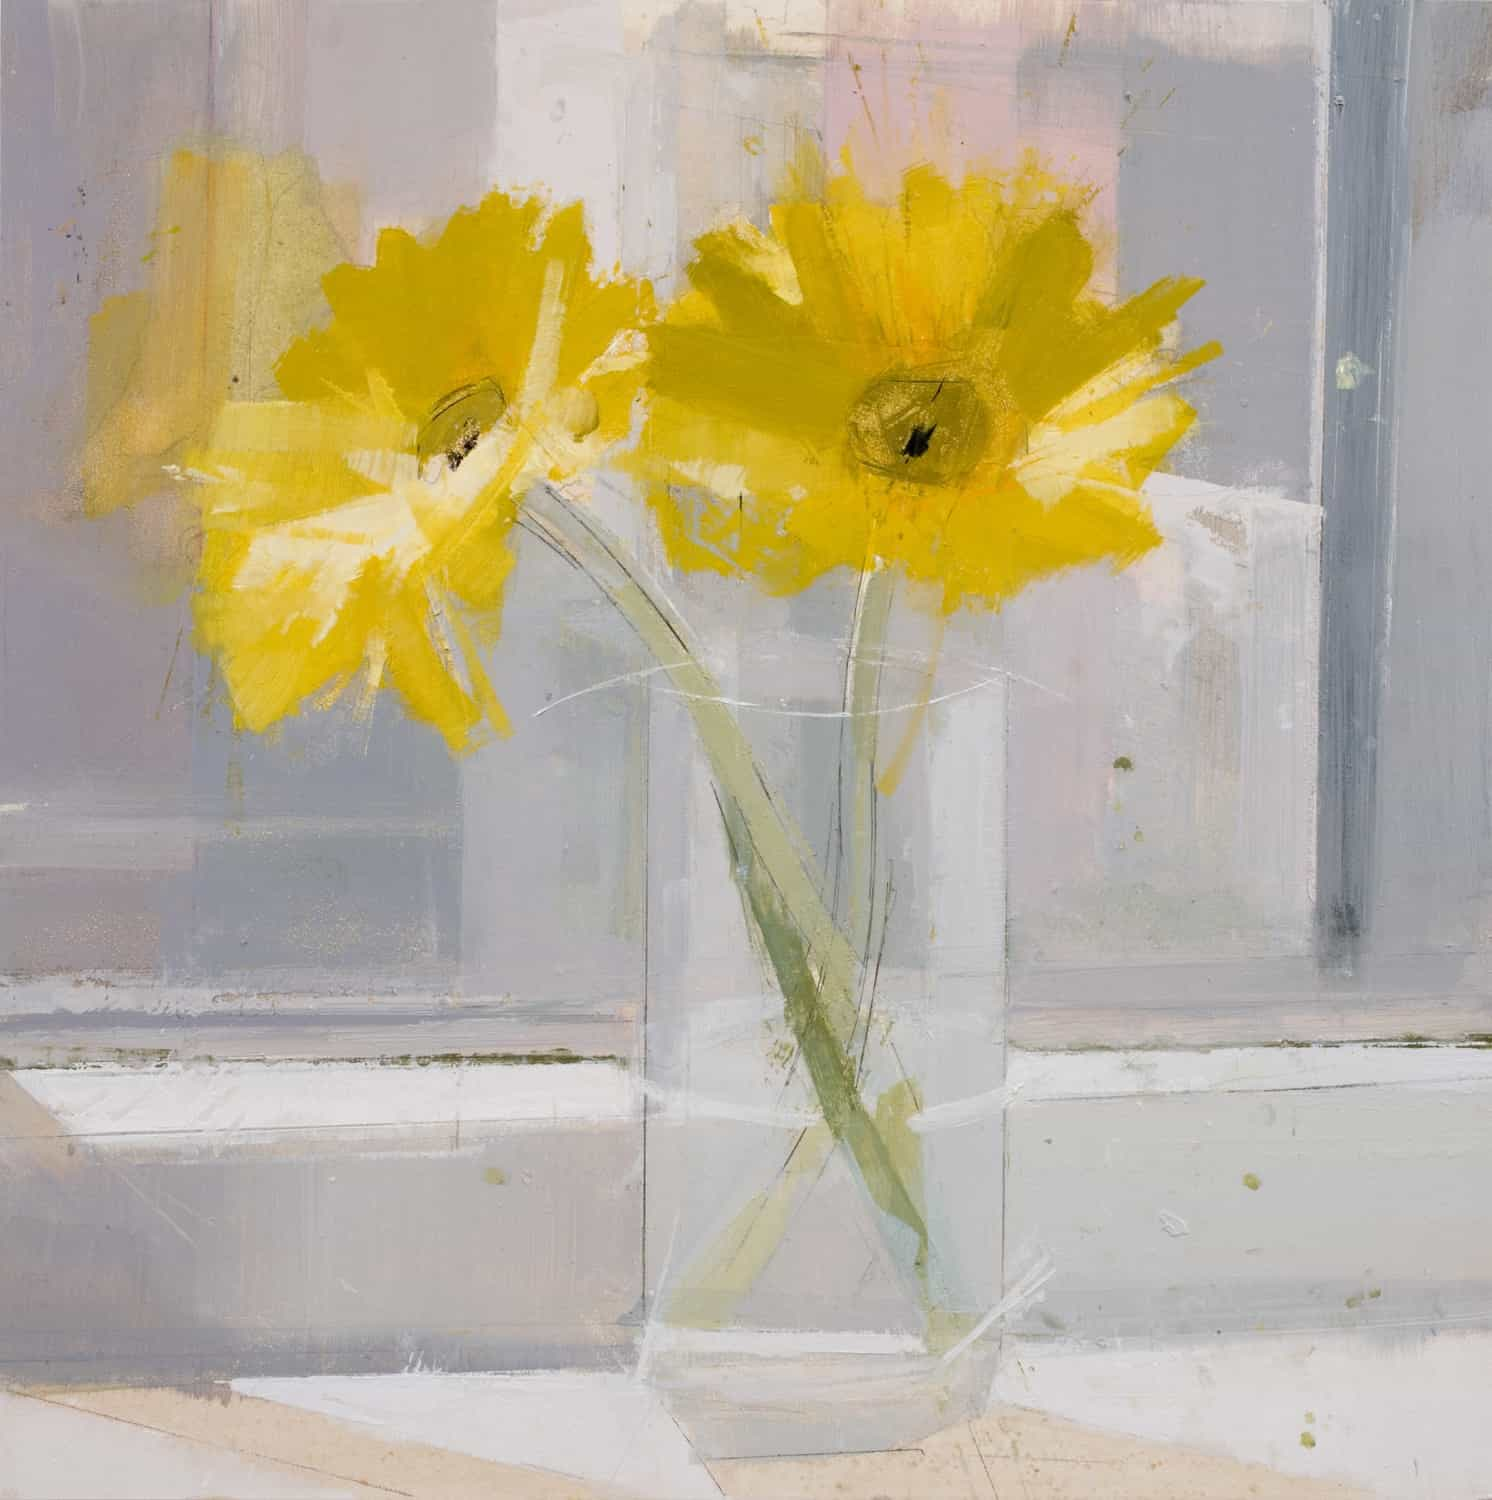 Flowers in a Glass 3 (2010), oil and pencil on panel, 12 by 12 inches